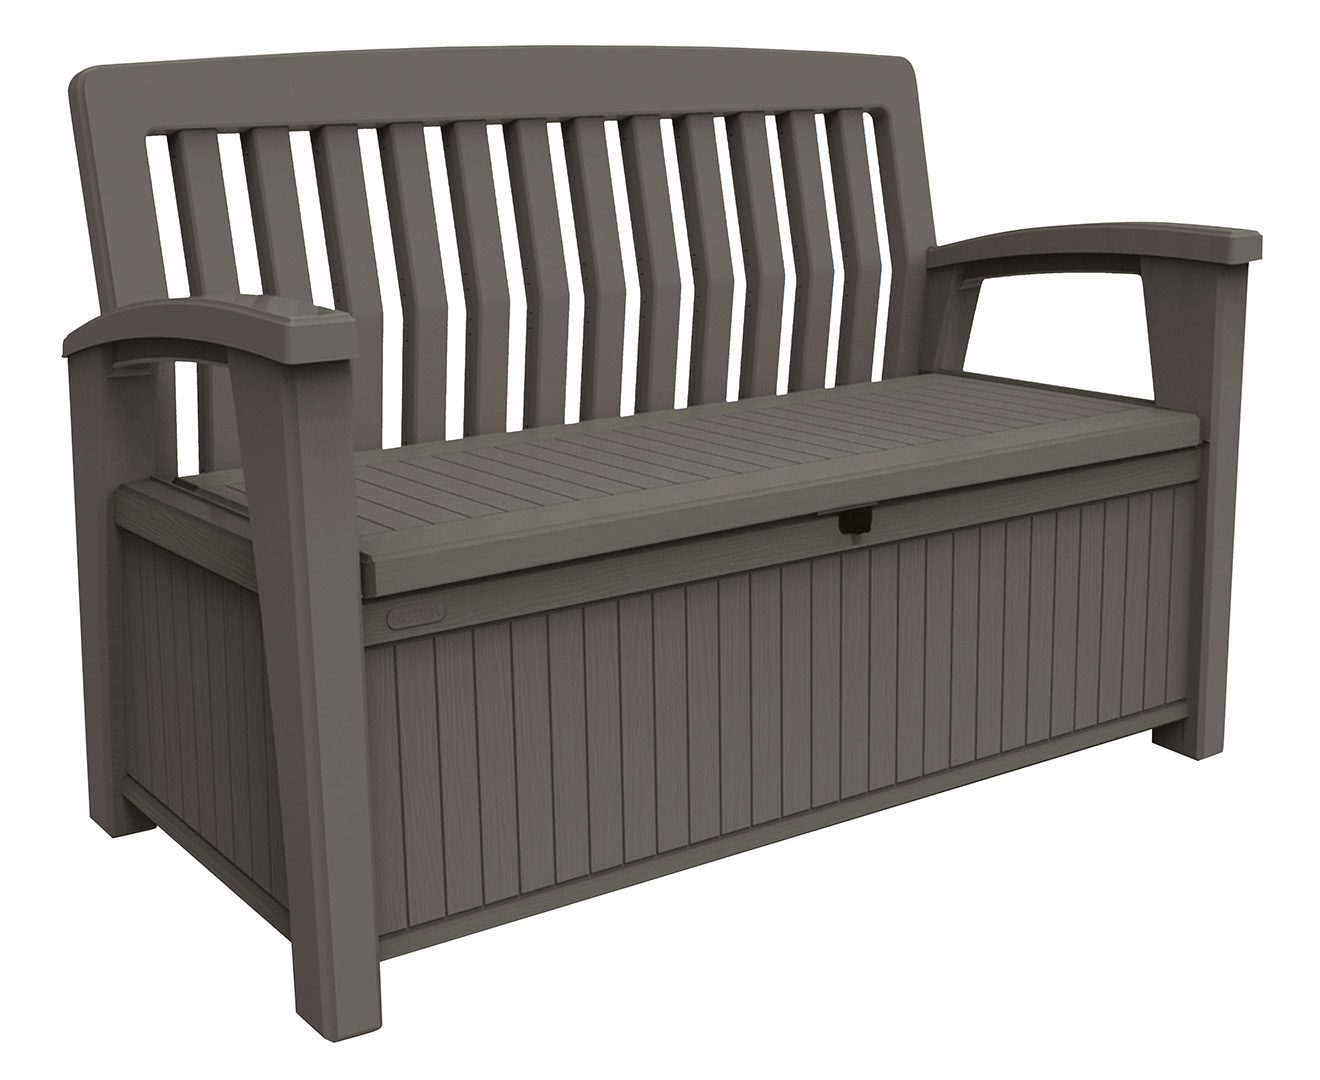 Keter patio 227l storage bench taupe great daily deals at australia 39 s favourite superstore Home furniture packages australia